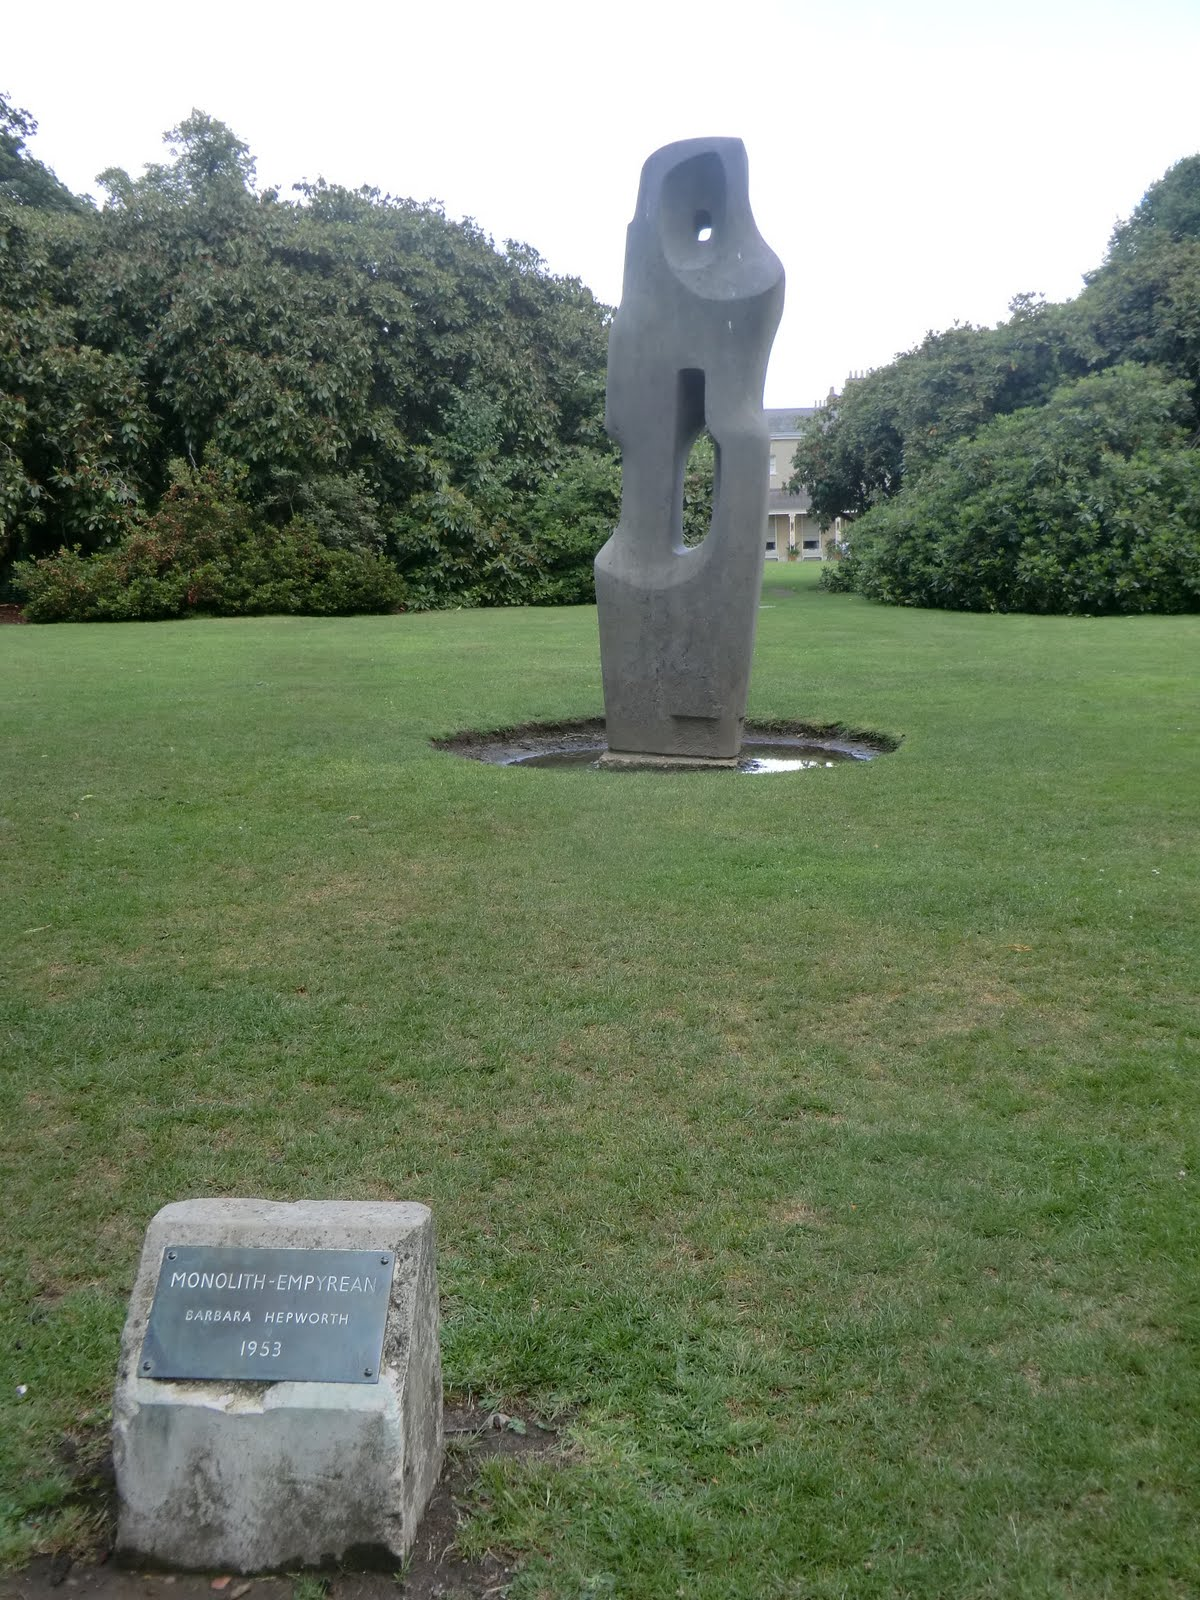 CIMG9361 Barbara Hepworth sculpture, Kenwood Estate